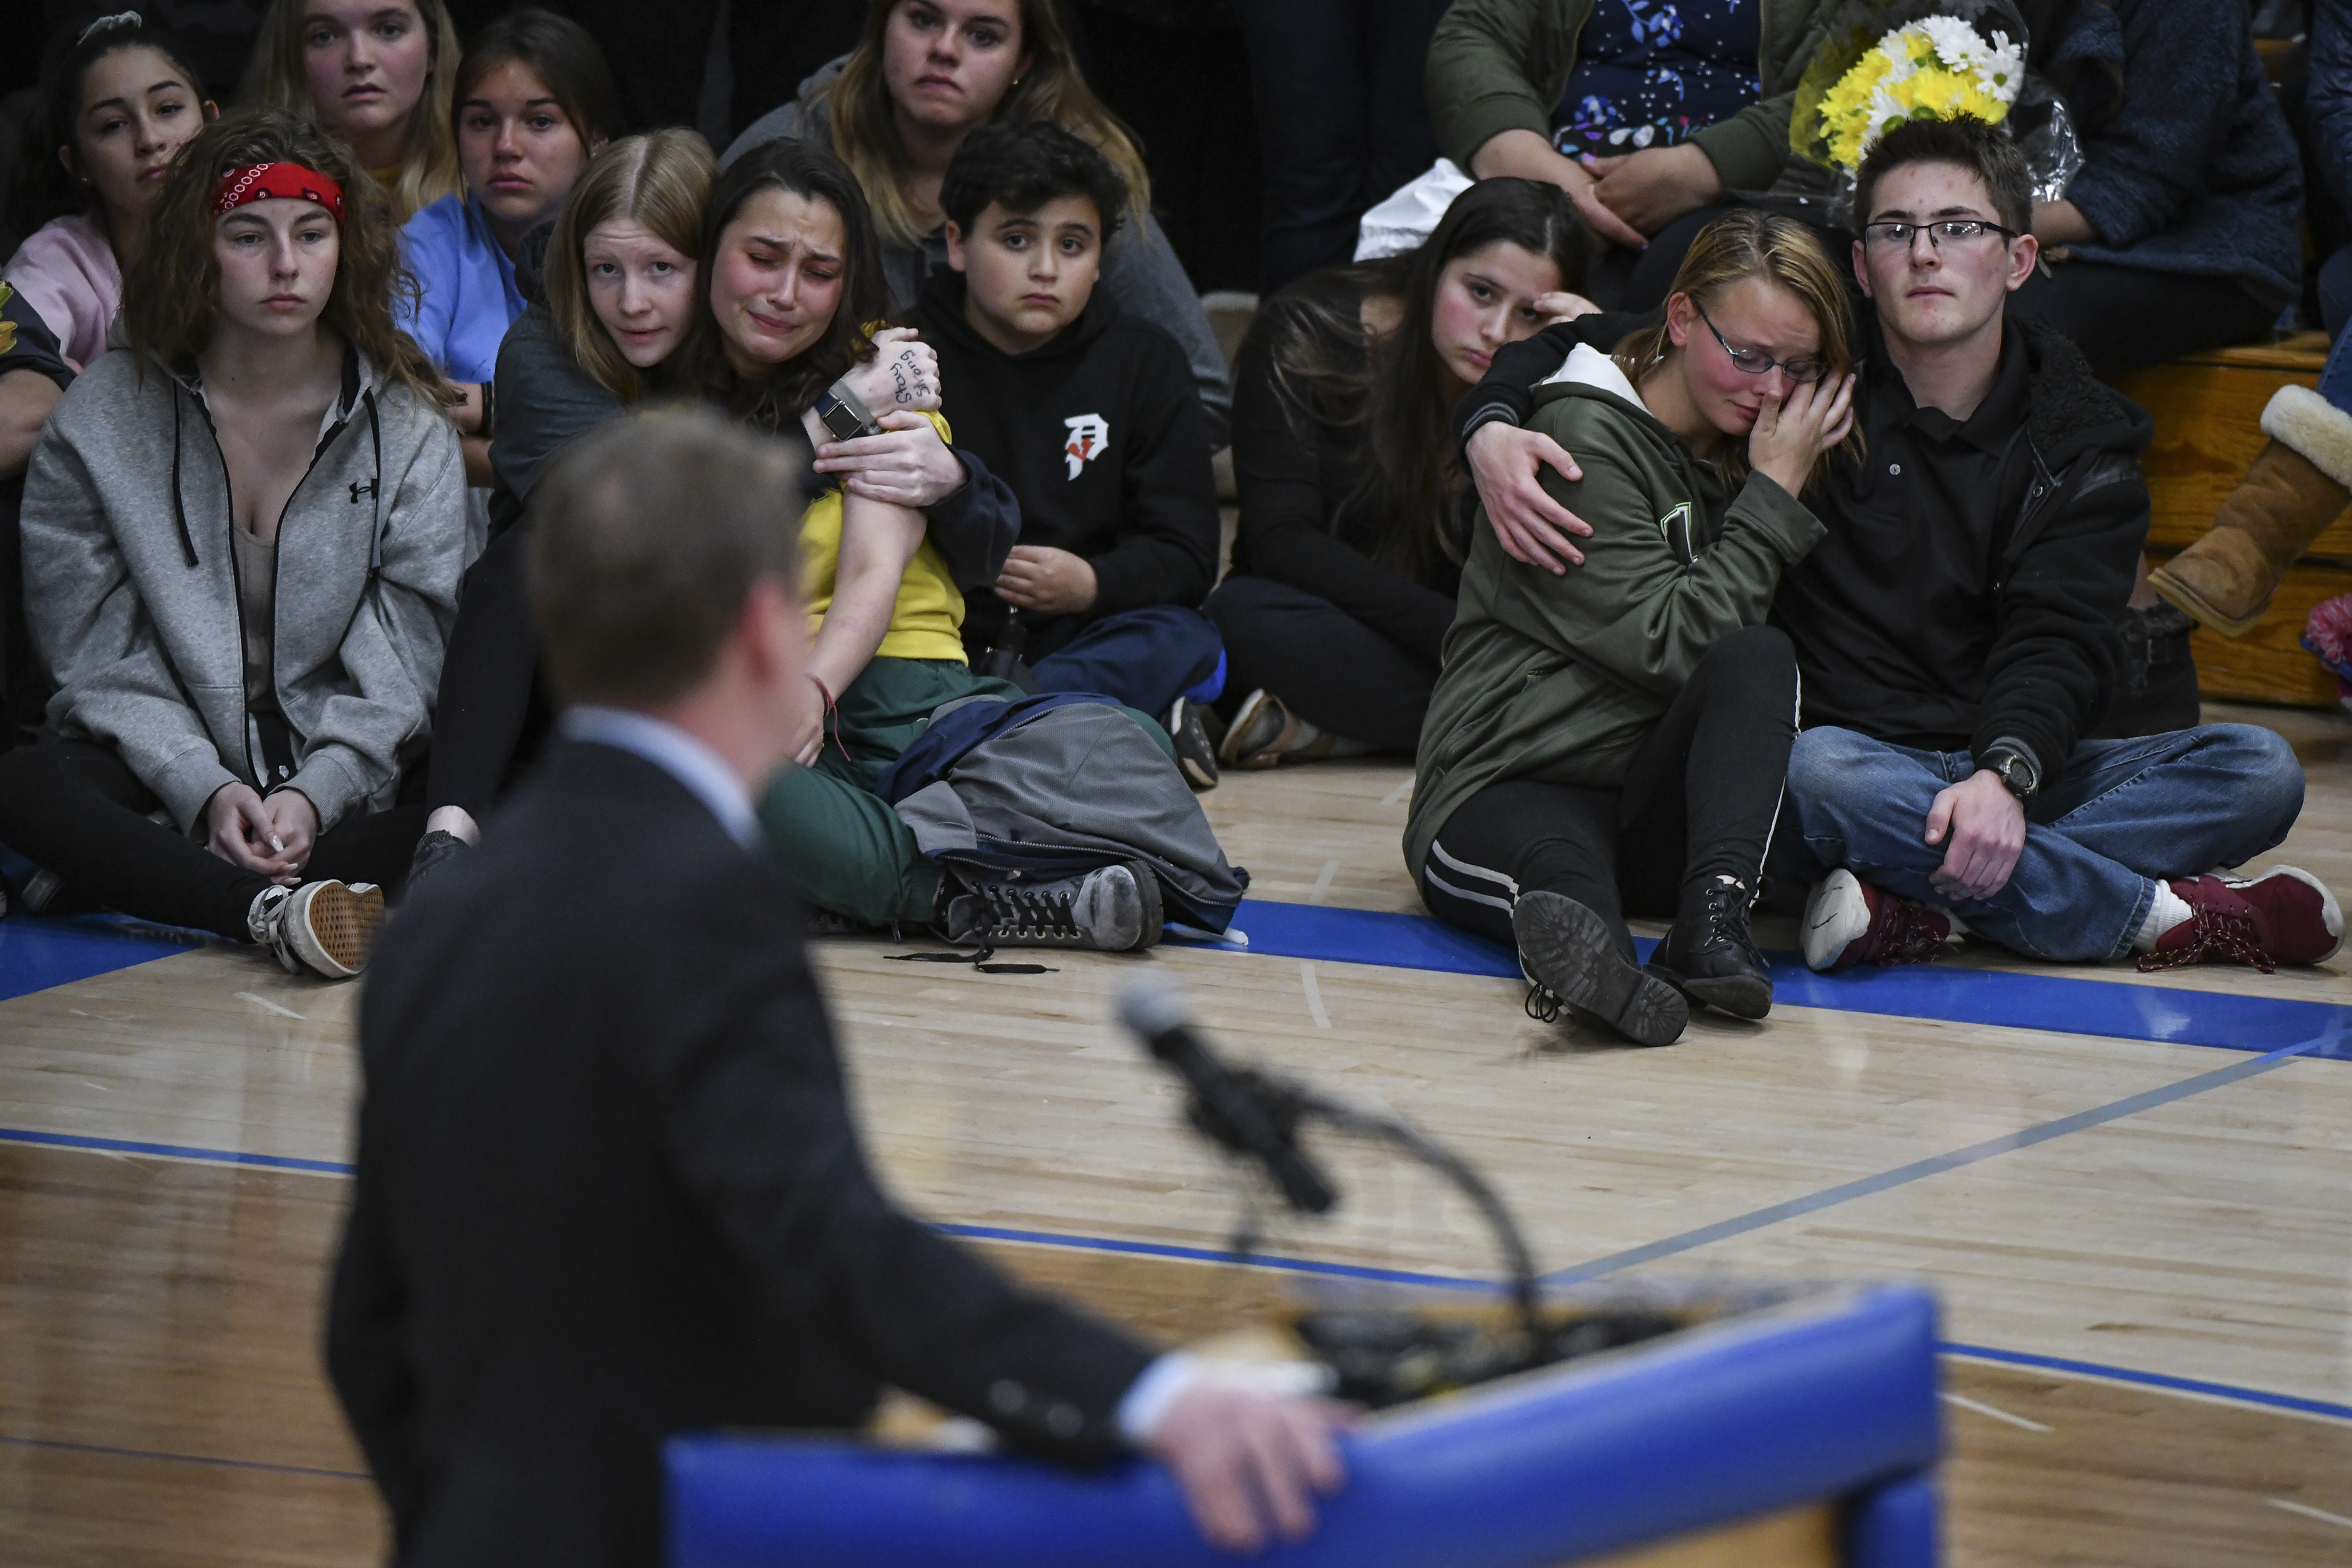 Students listen as Sen. Michael Bennet (D-CO) speaks during a candlelight vigil at Highlands Ranch High School on May 8, 2019 in Highlands Ranch, Colorado. One student was killed and eight others were injured during a shooting at STEM School Highlands Ranch on Tuesday.